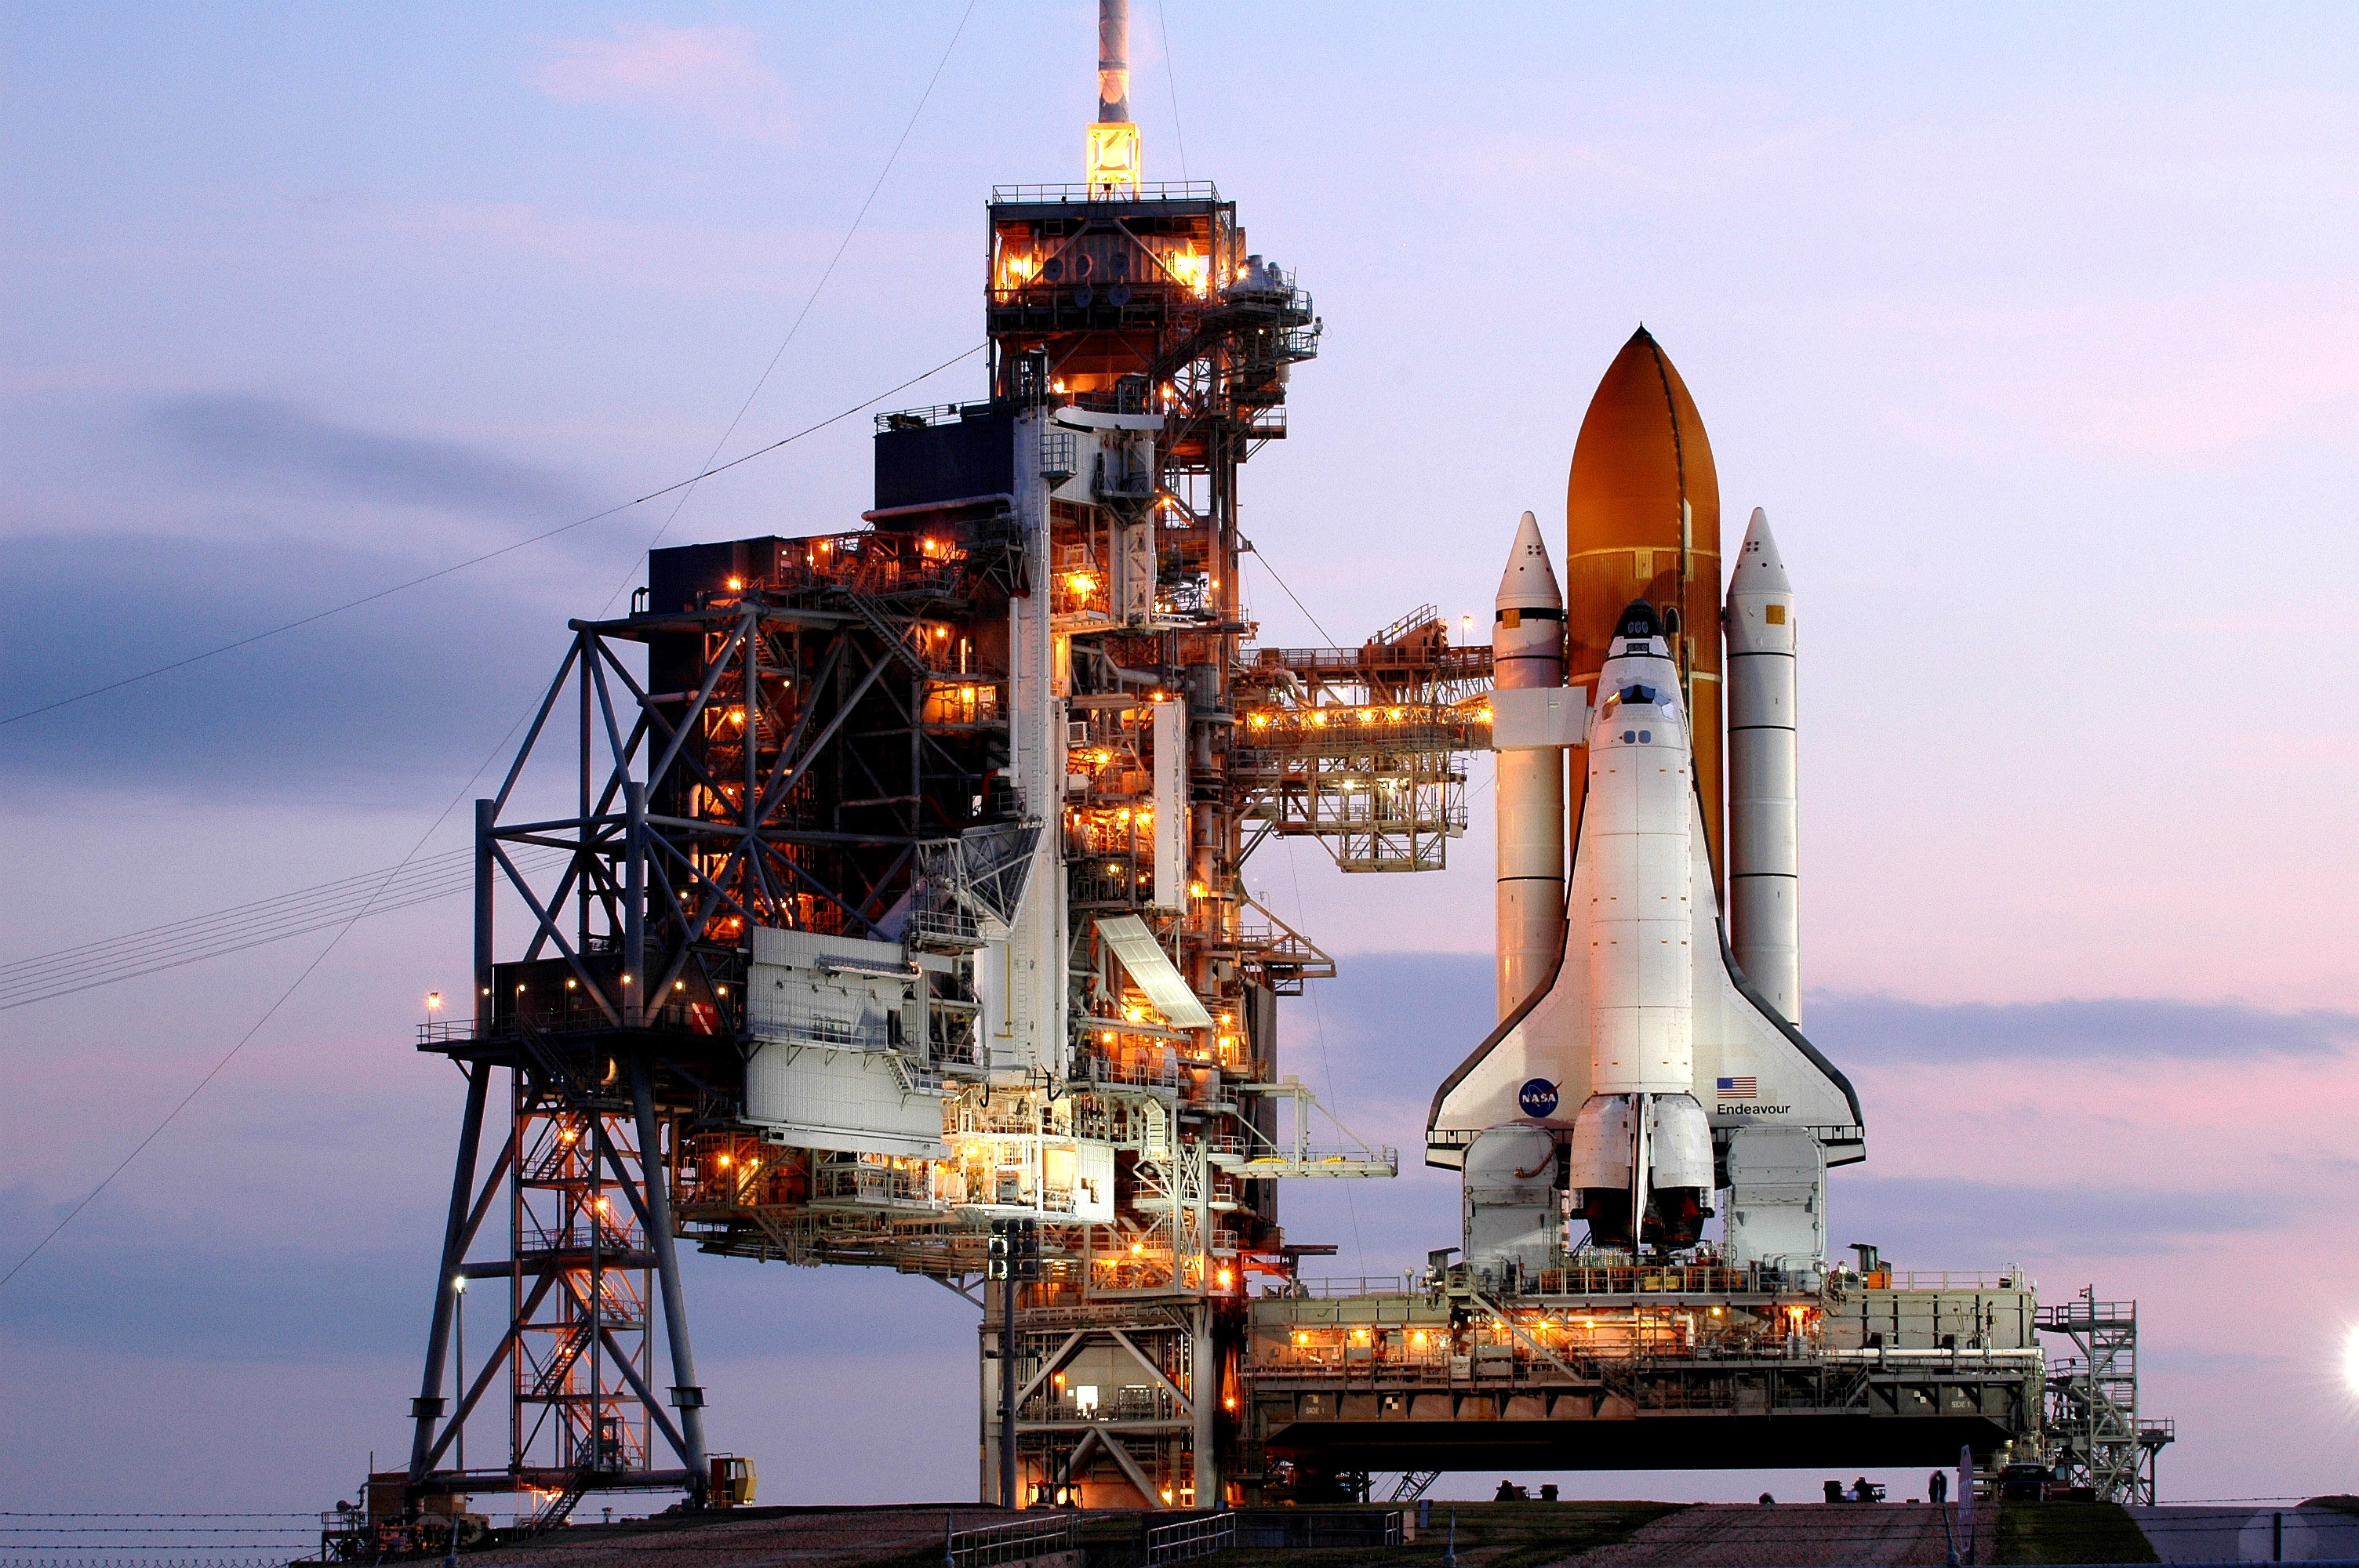 nasa space shuttle launch schedule - 985×655